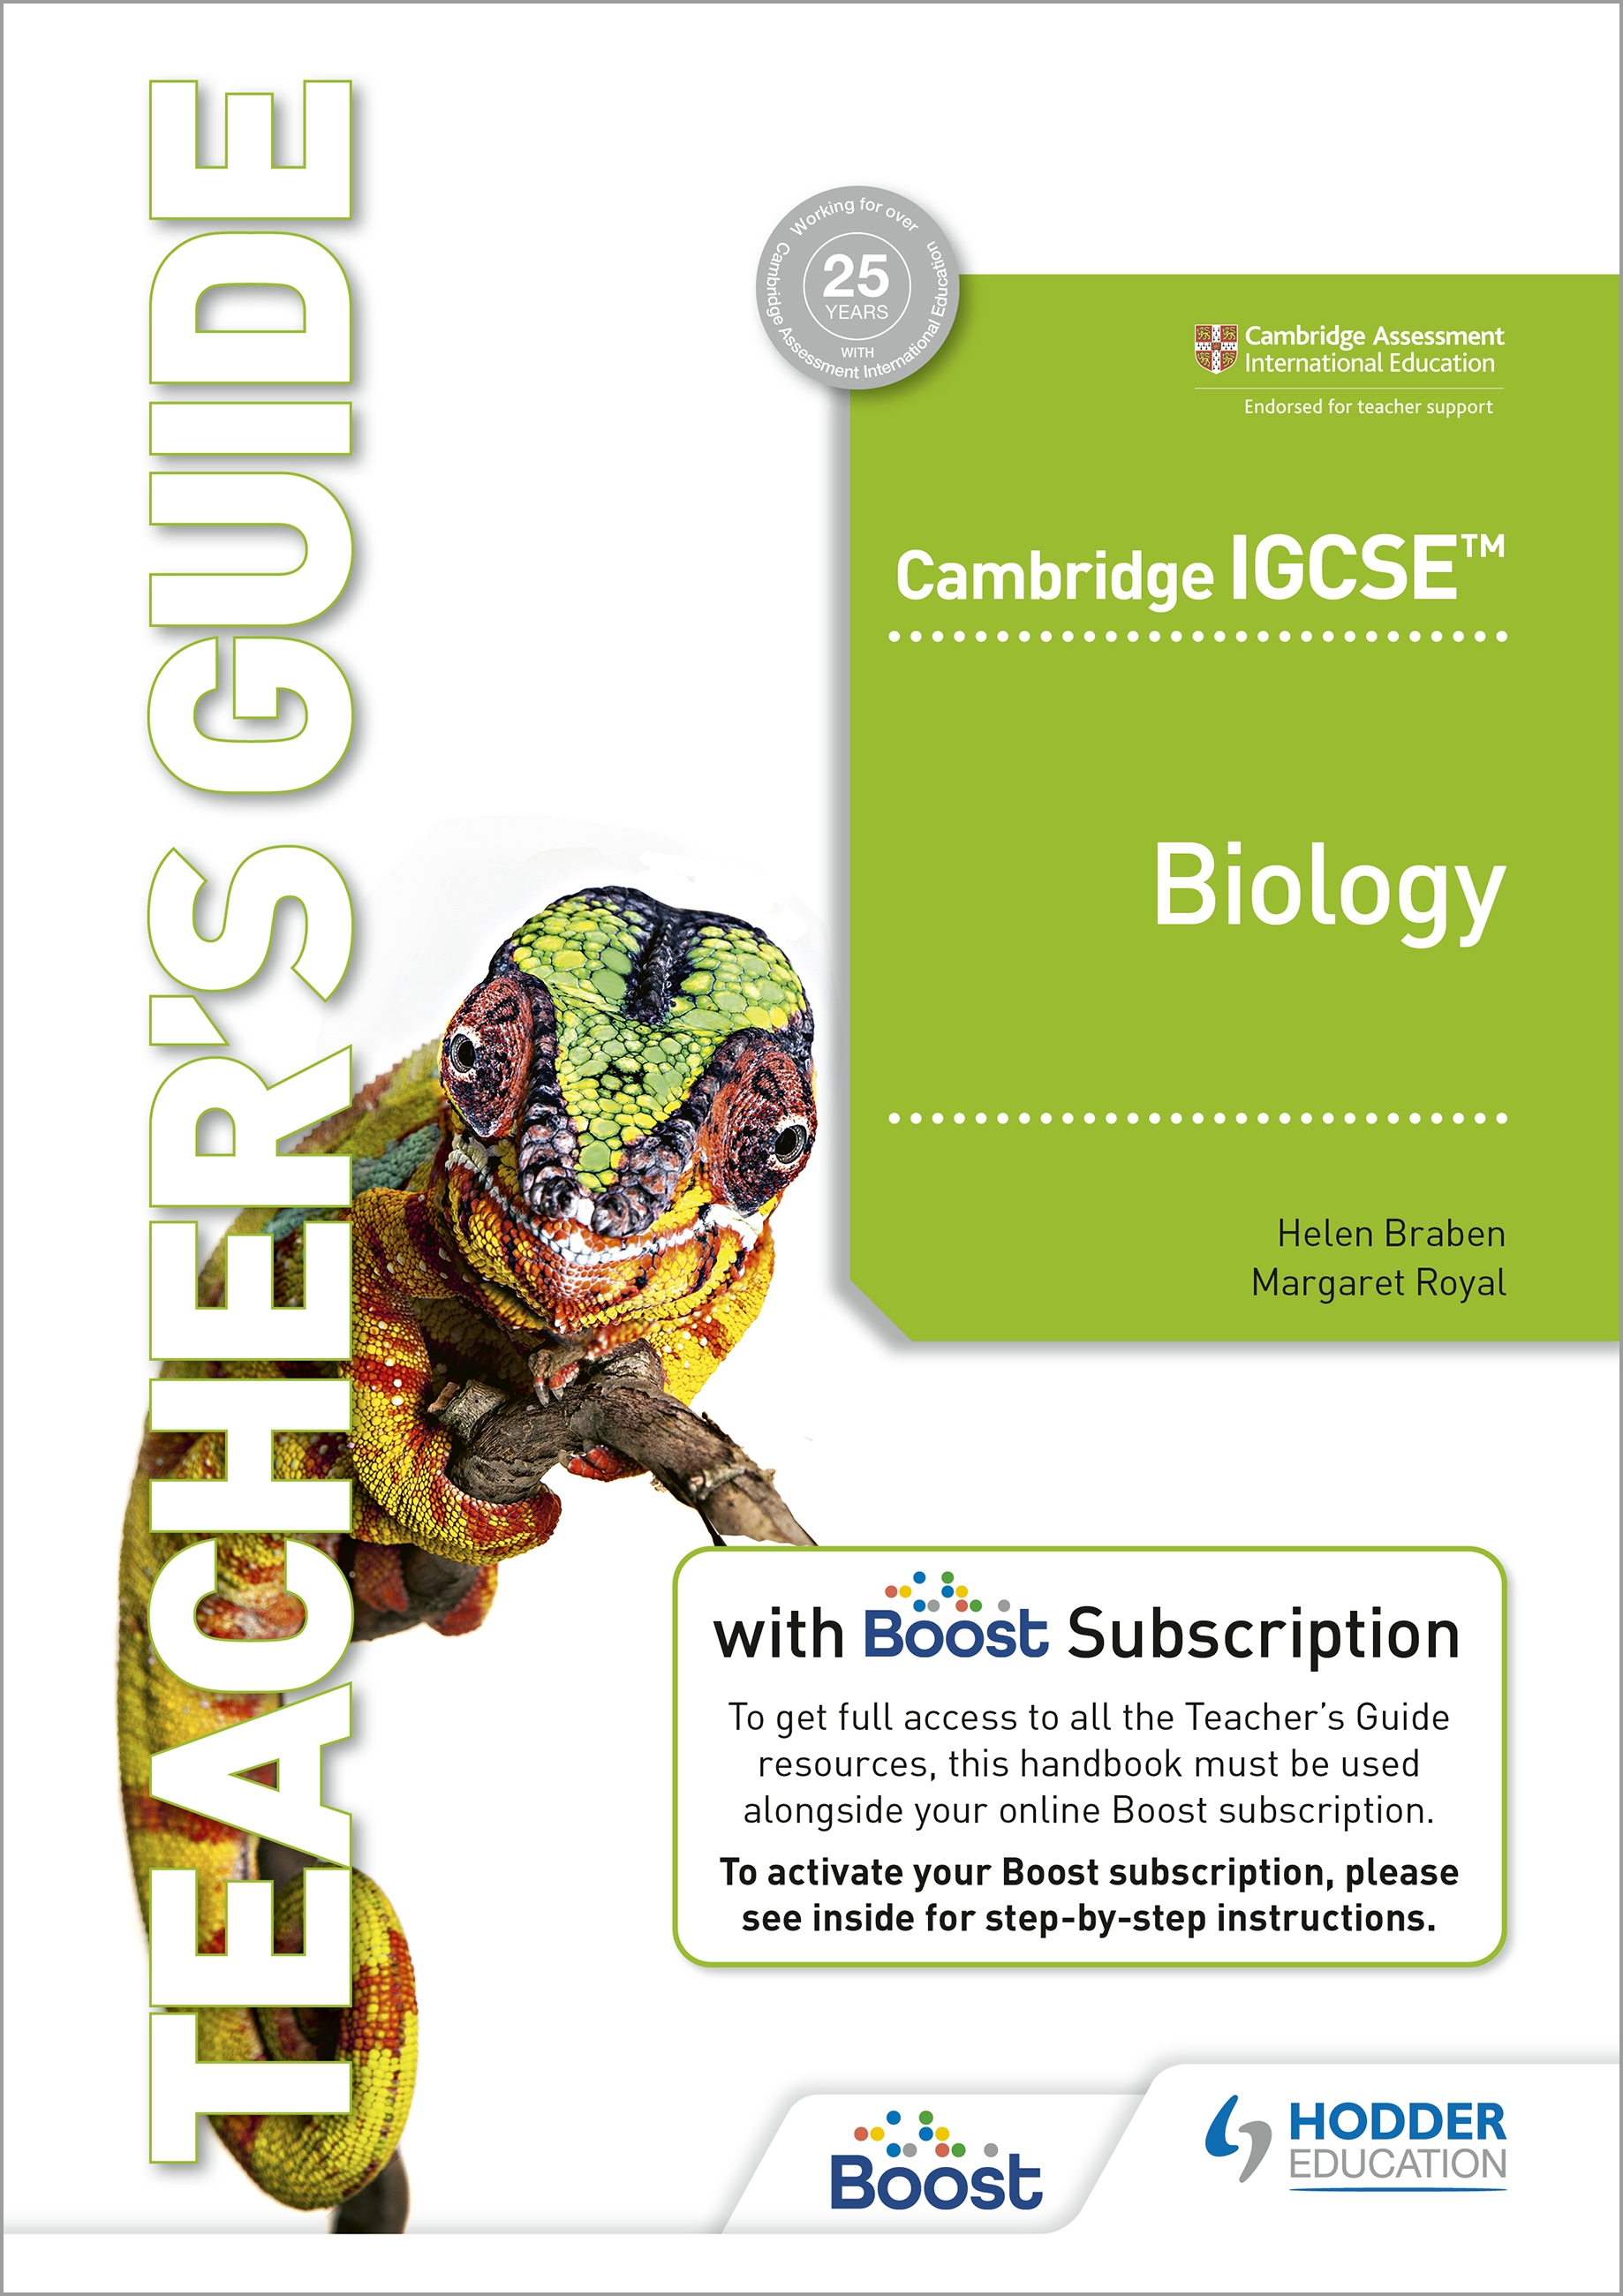 Cambridge IGCSE (TM) Biology Teacher's Guide with Boost Subscription Booklet